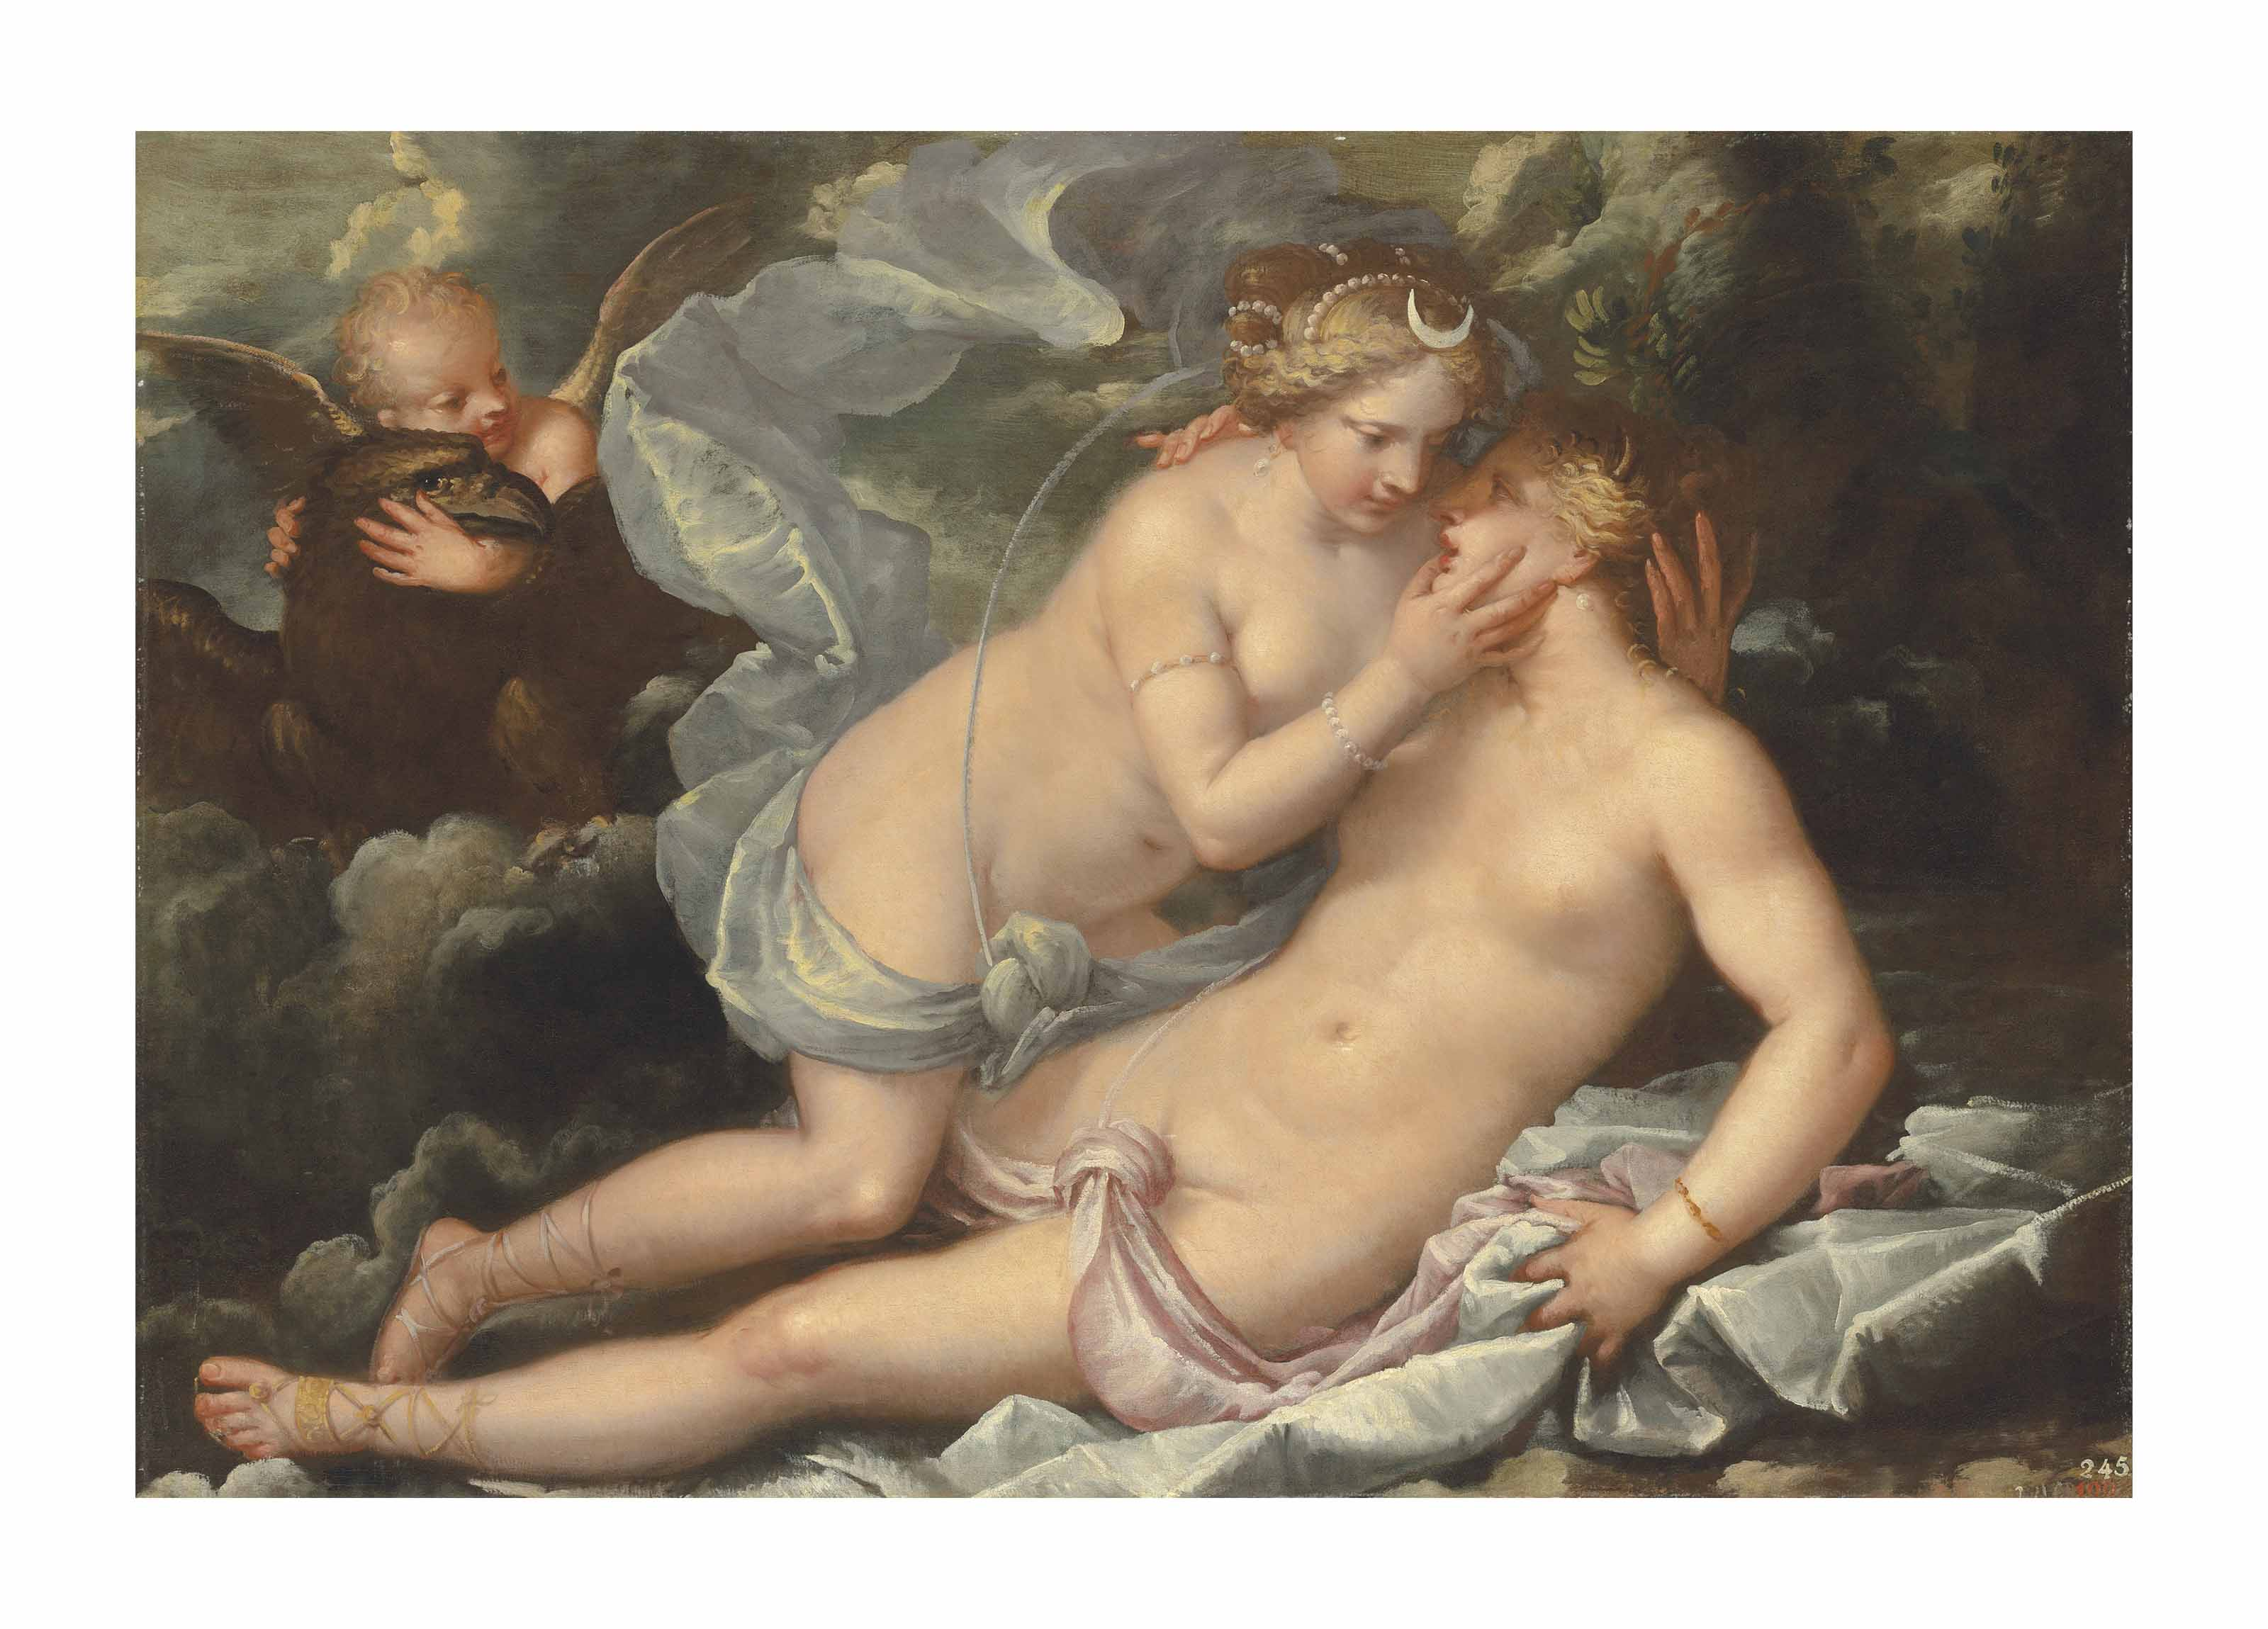 Jupiter in the guise of Diana and the nymph Callisto